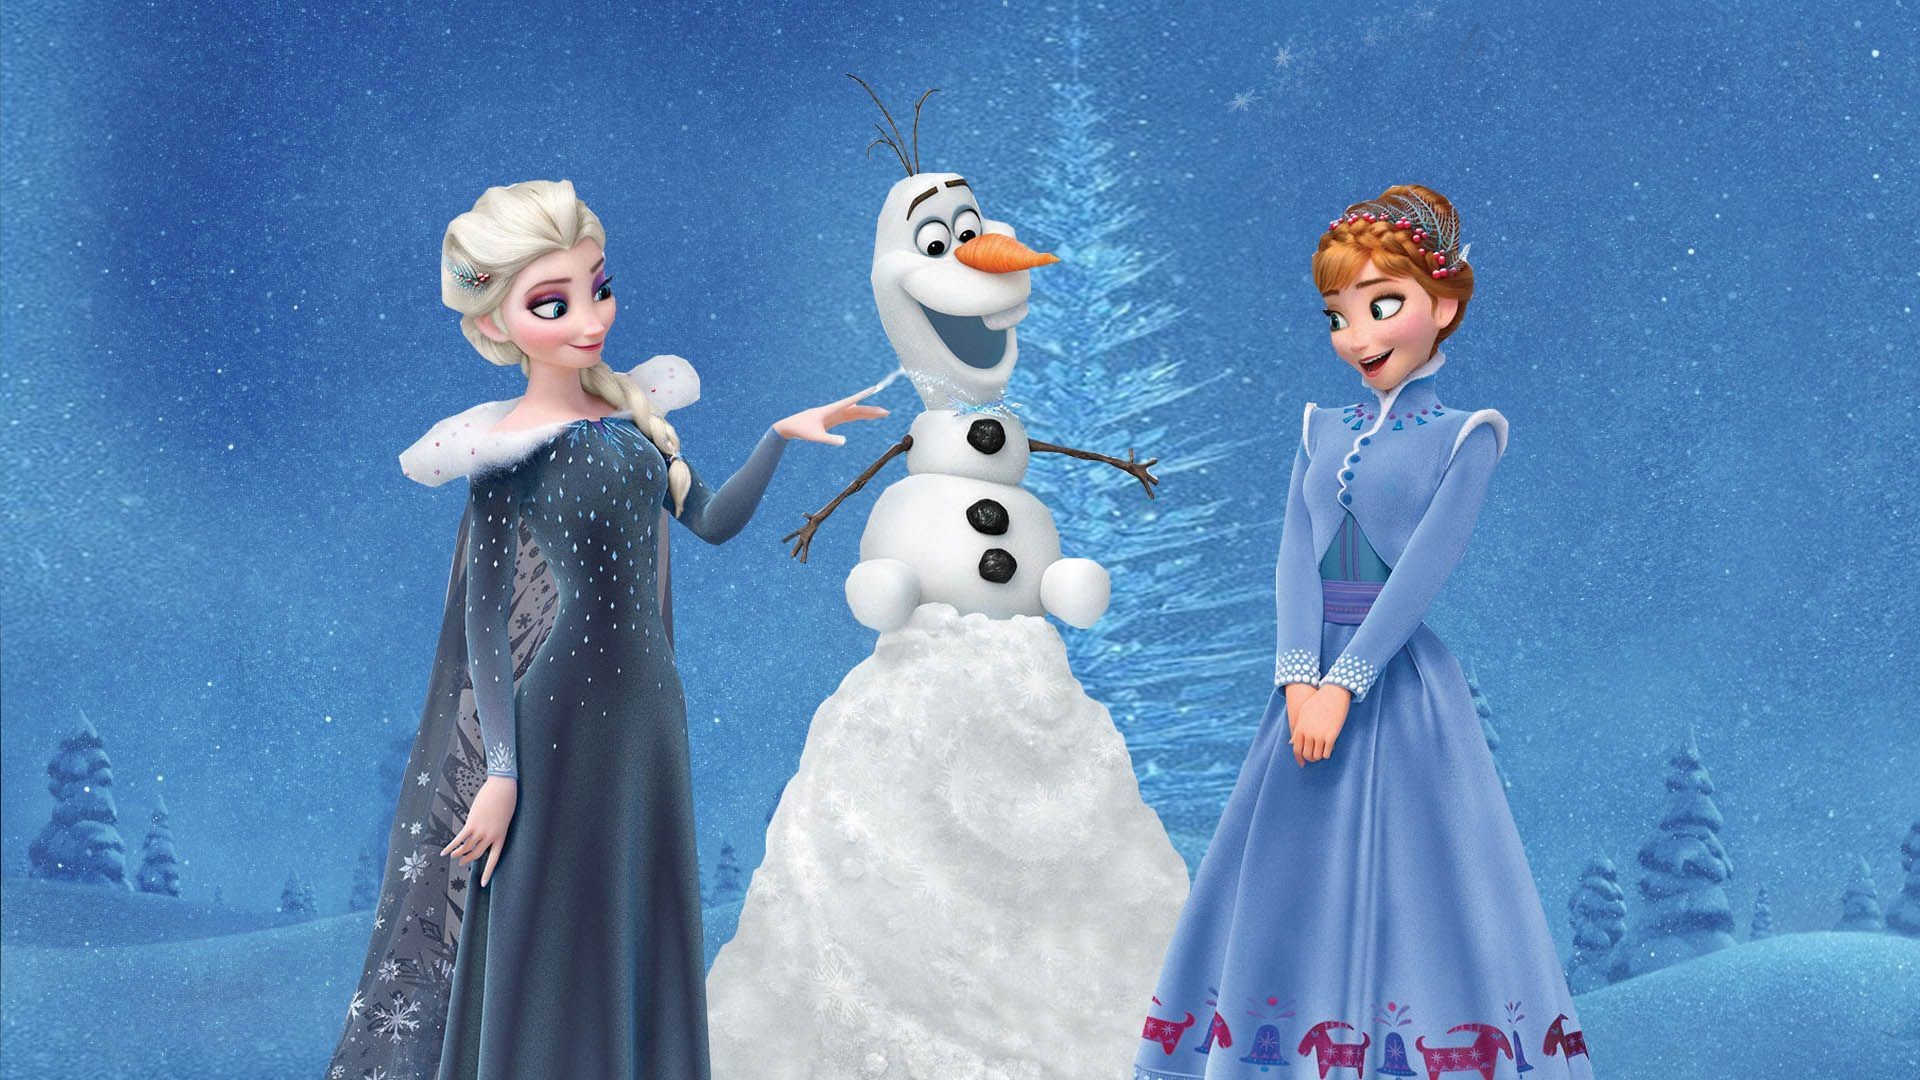 Res: 1920x1080, Olaf's Frozen Adventure Anna Elsa Wallpaper Download free, full Size  wallpaper by Original Resolution,